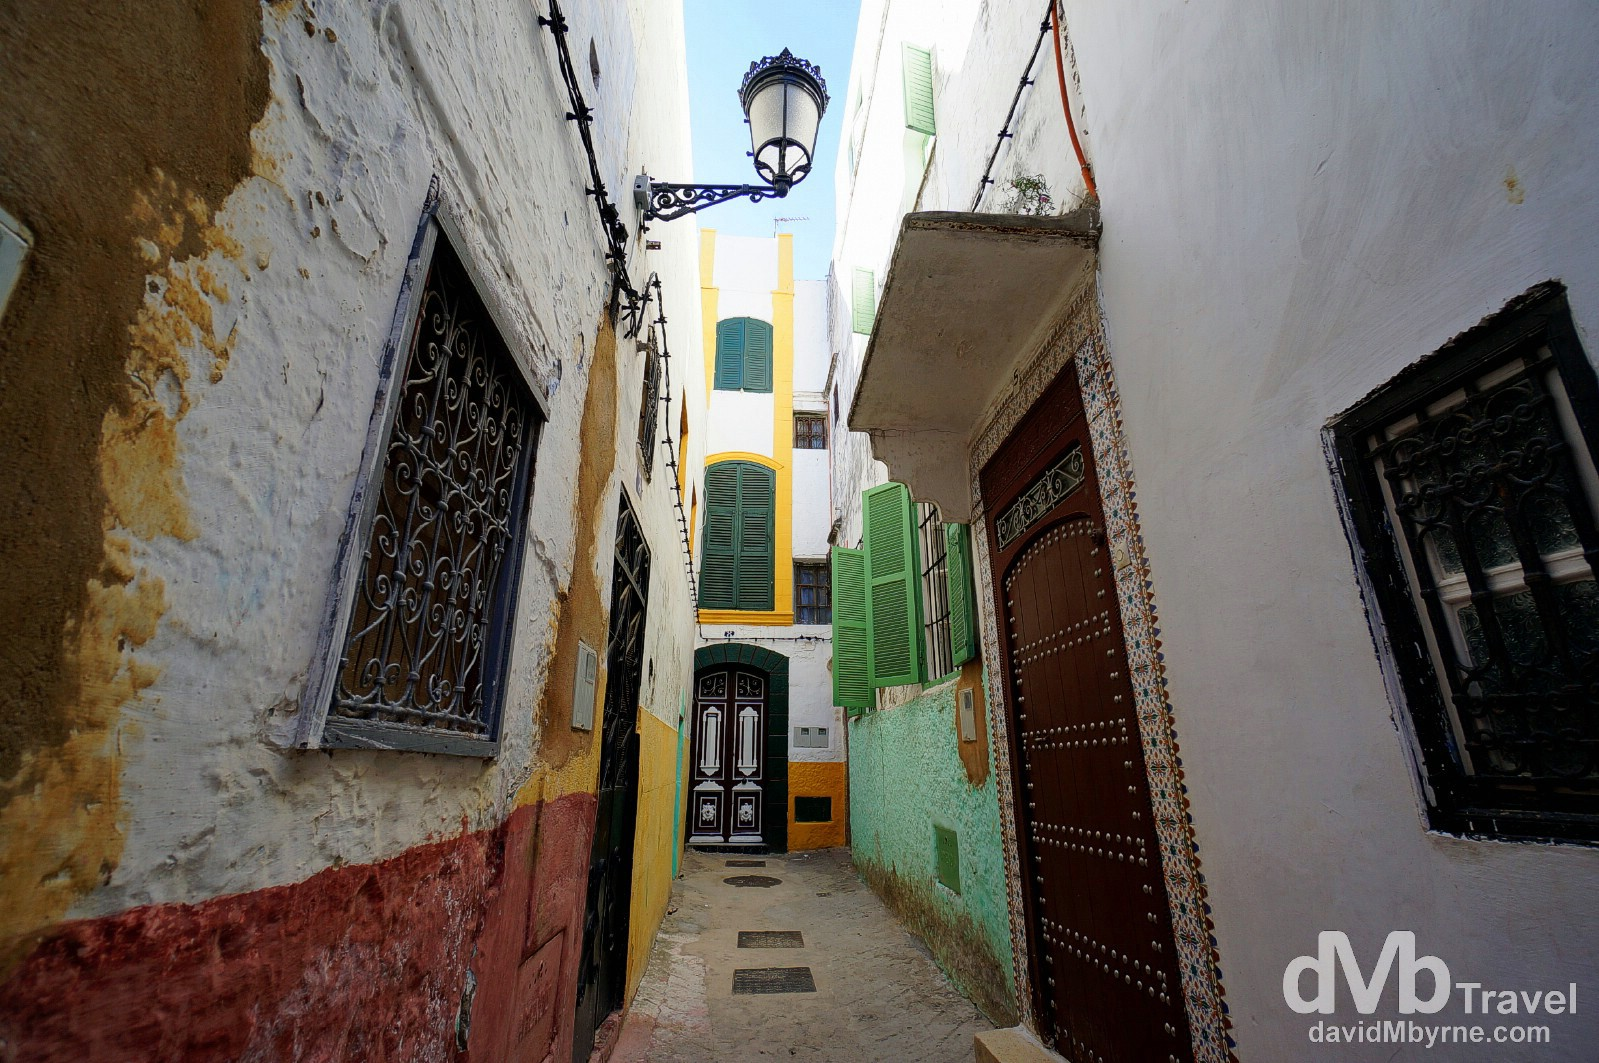 Andalusian overtones in a narrow lane in the UNESCO-listed medina of Tetouan, Morocco. June 2nd, 2014.